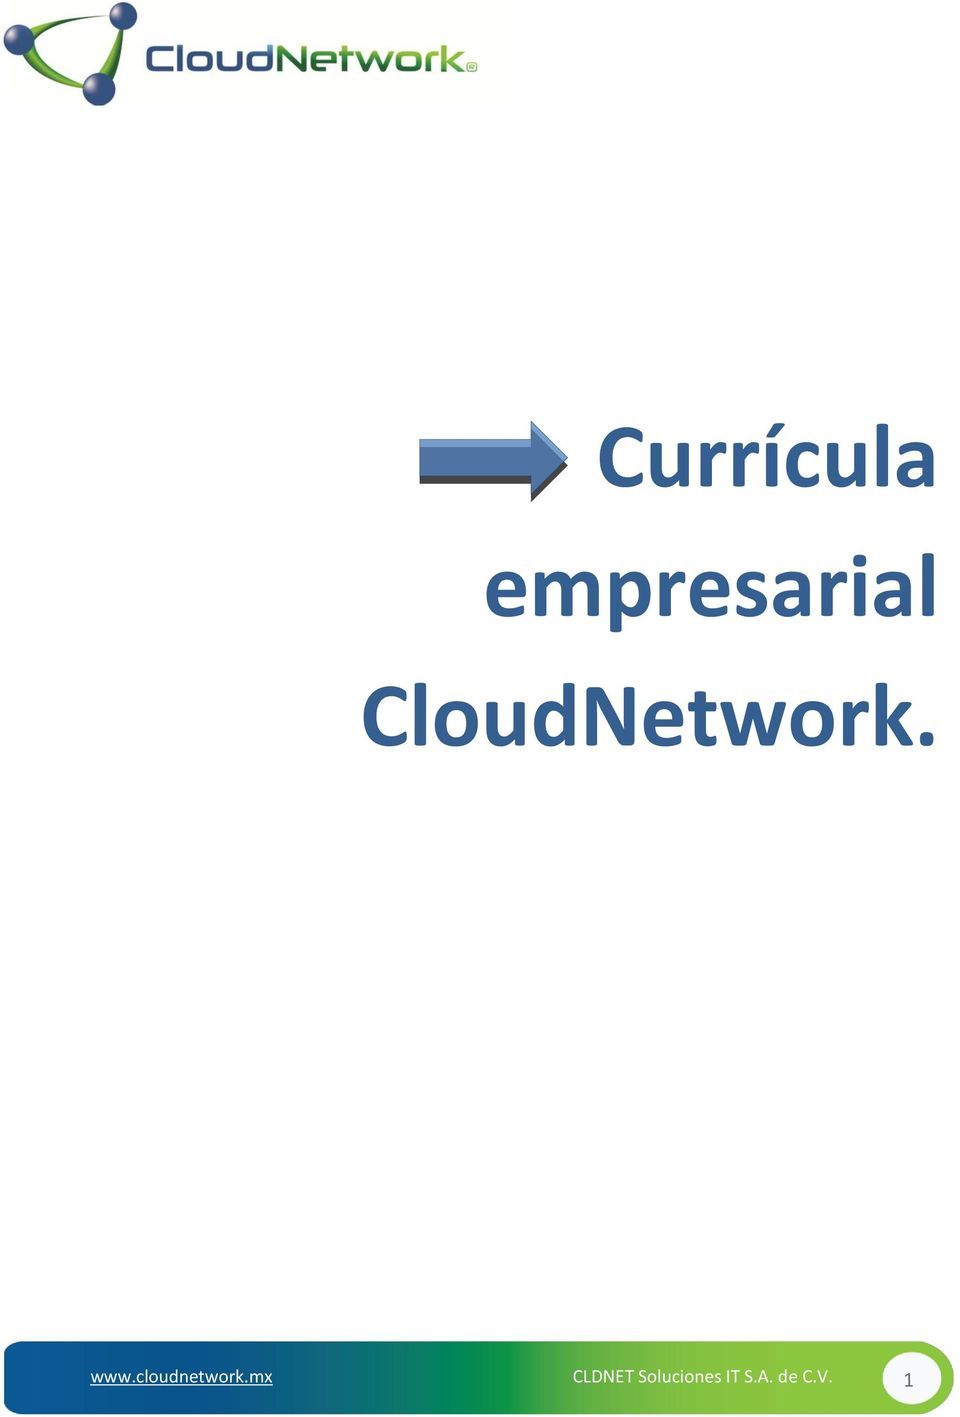 cloudnetwork.